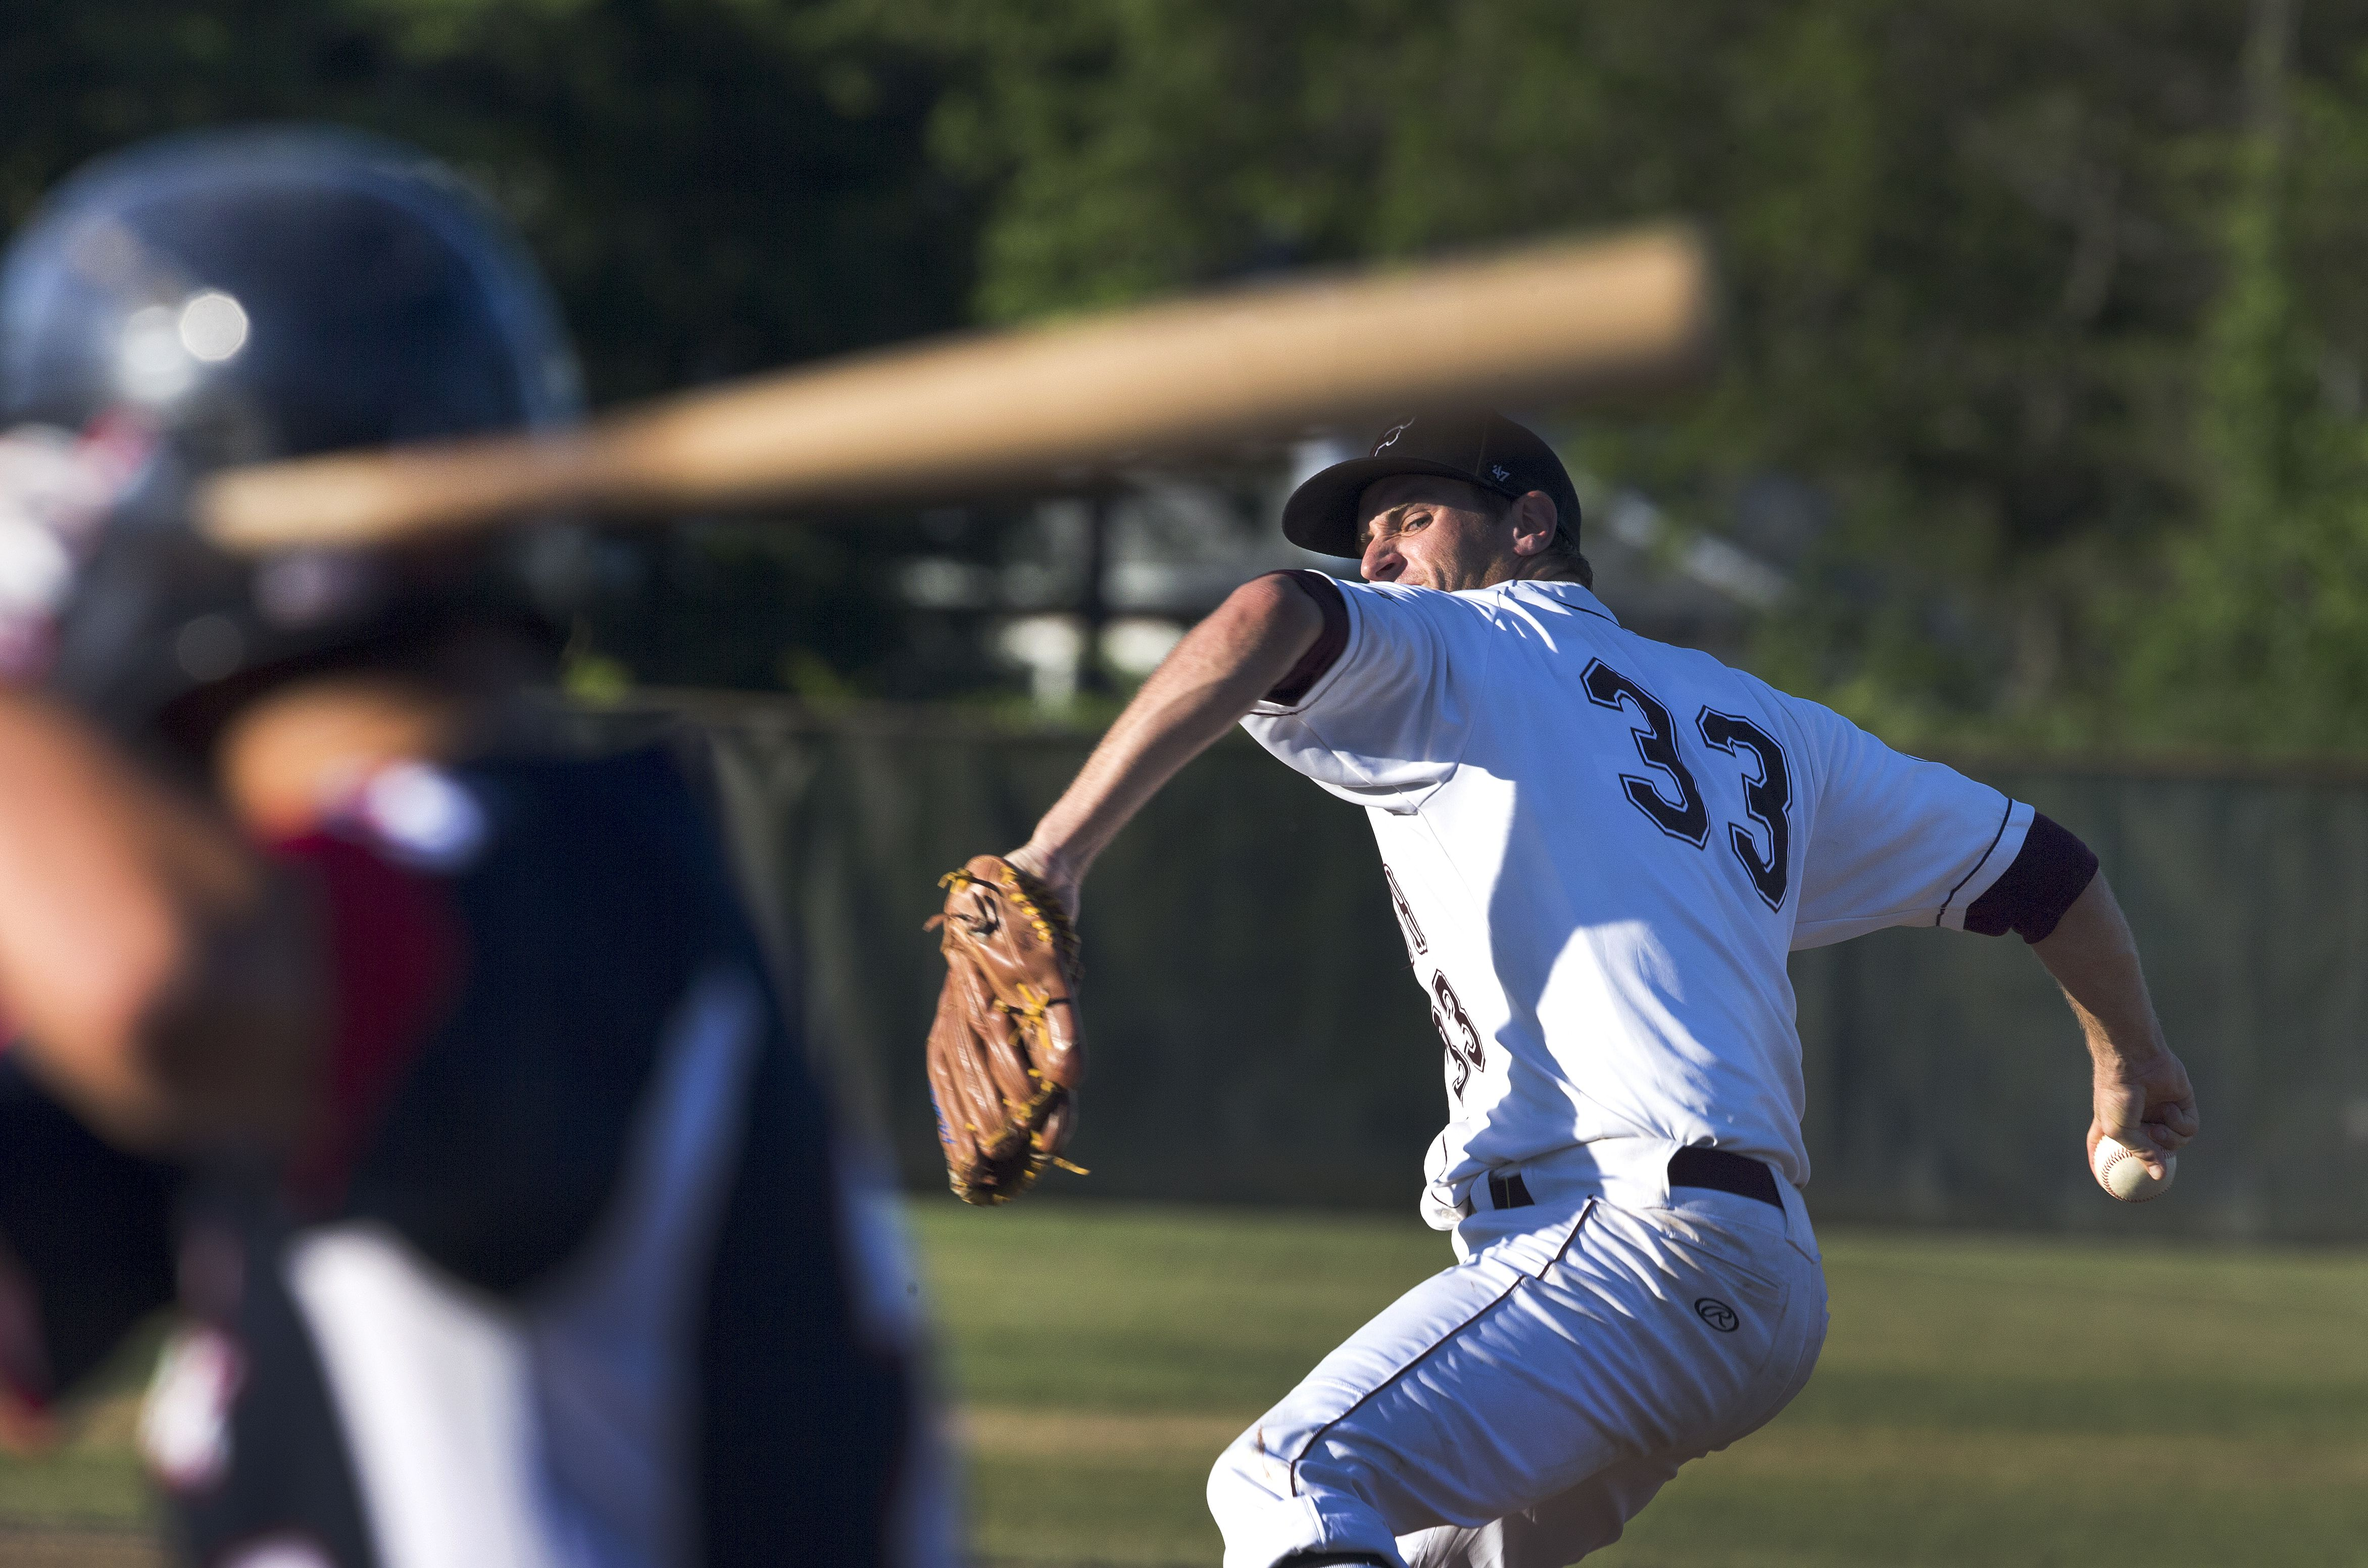 On the Cape, baseball is more than just a game — it's a community